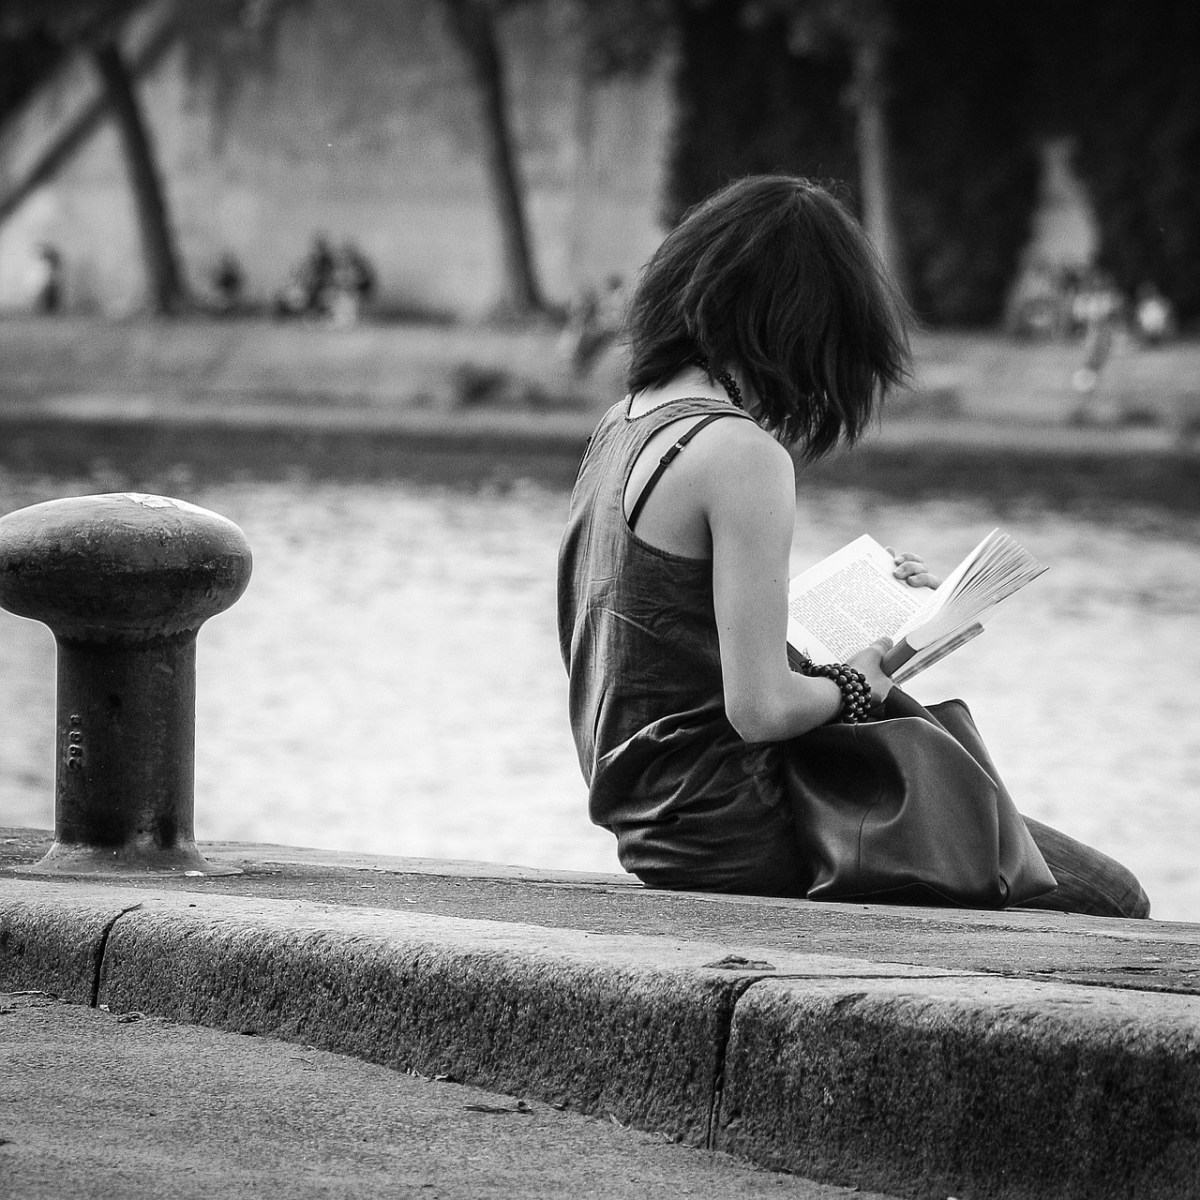 A woman reading by the Seine in Paris